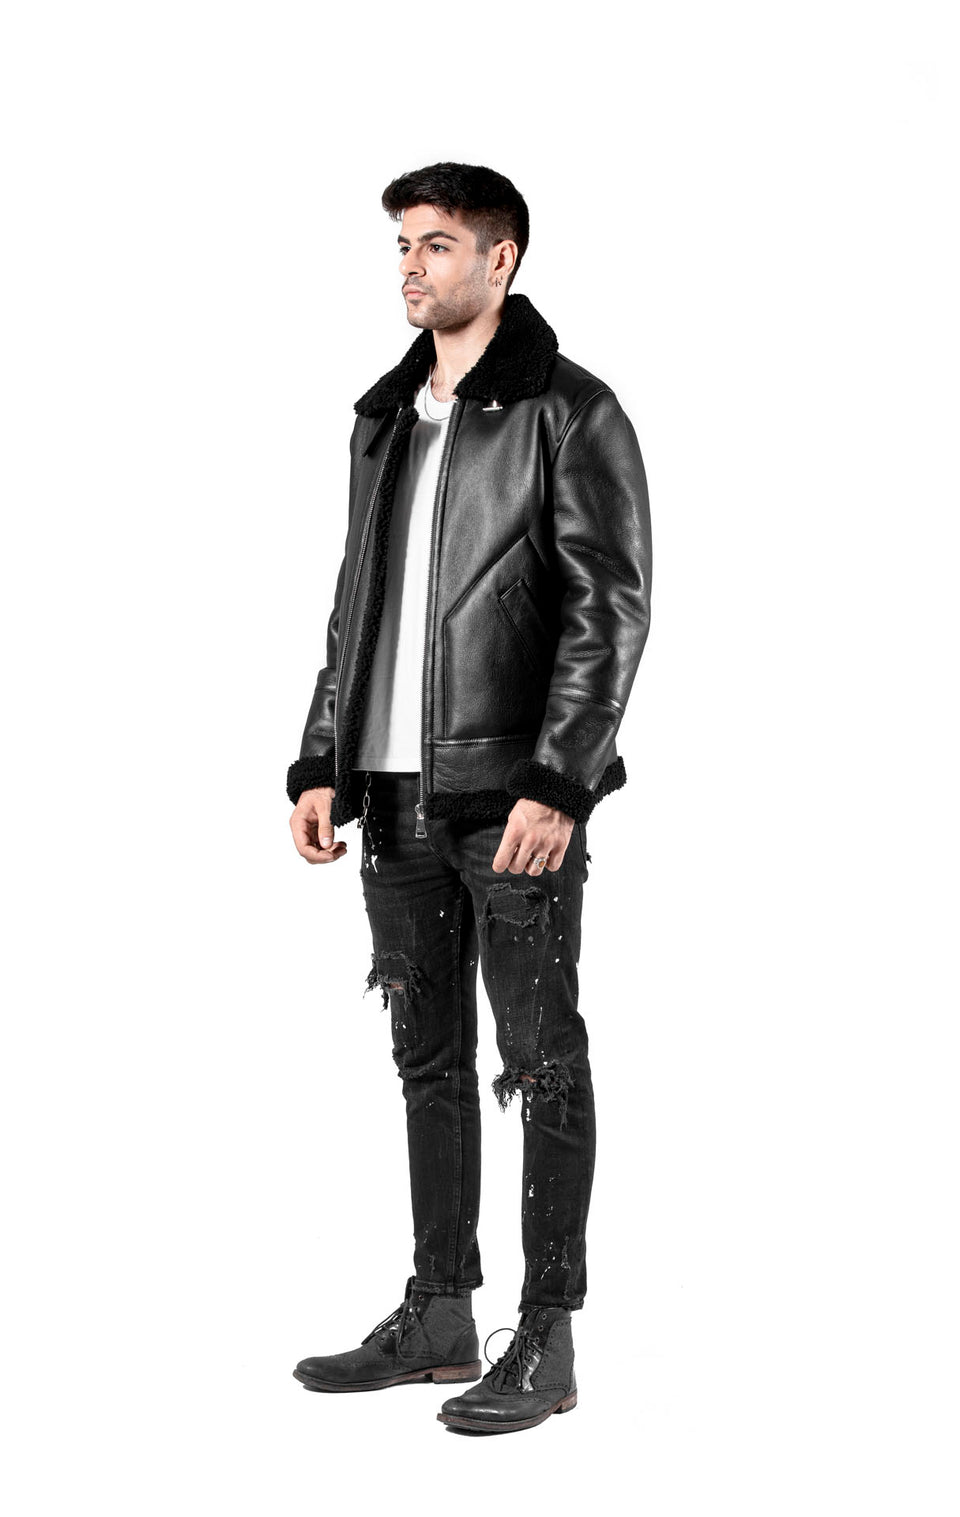 Vinly the Black Shearling Jacket For Men's - Zipper Jacket Fashion 2020